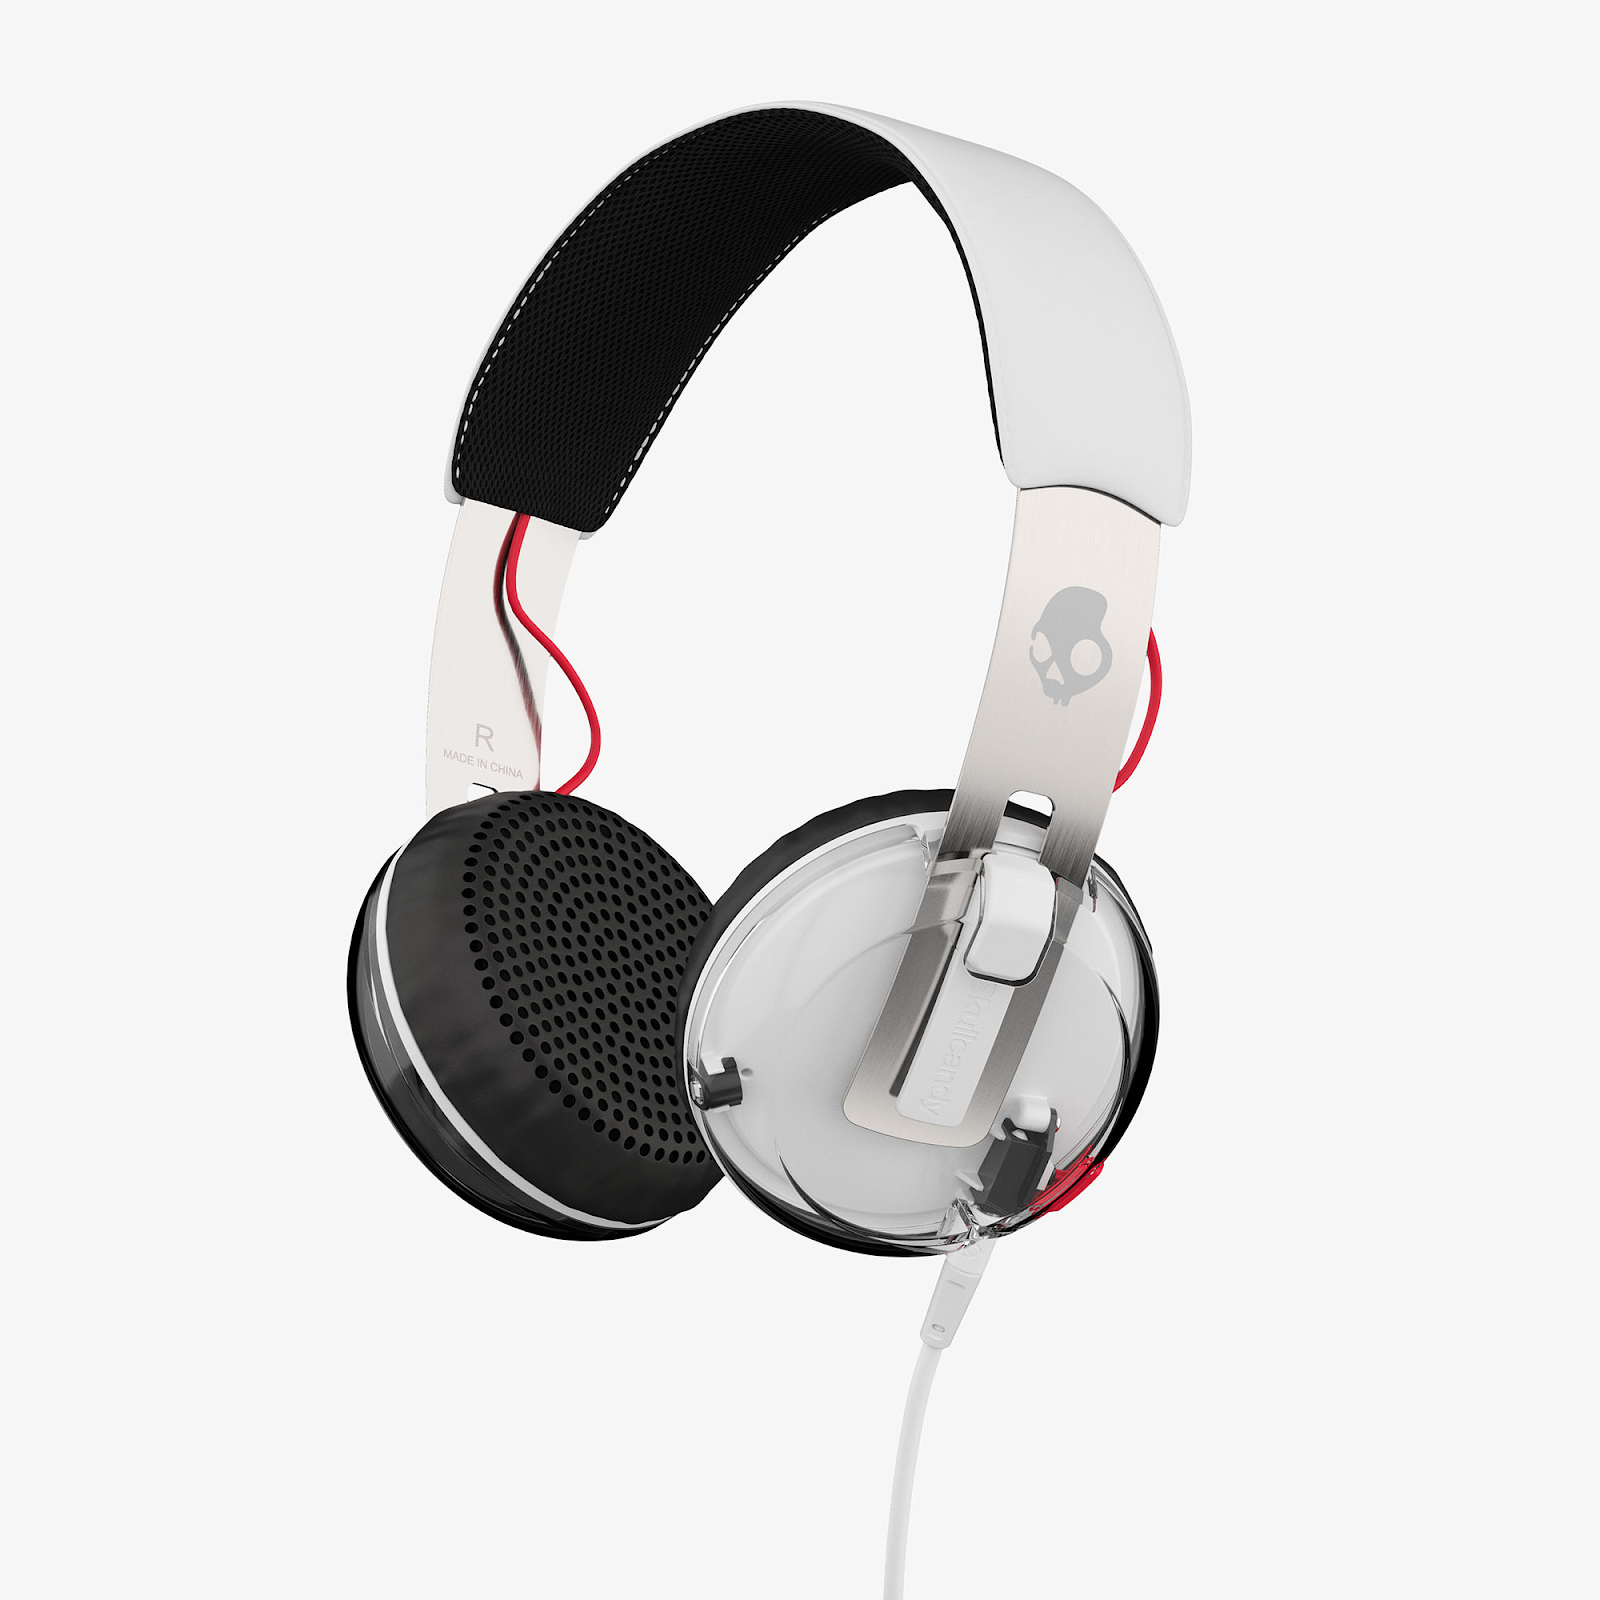 Skullcandy_Headphone_GRIND_S5GRHT-472_11_1100_Angle_Gray.png